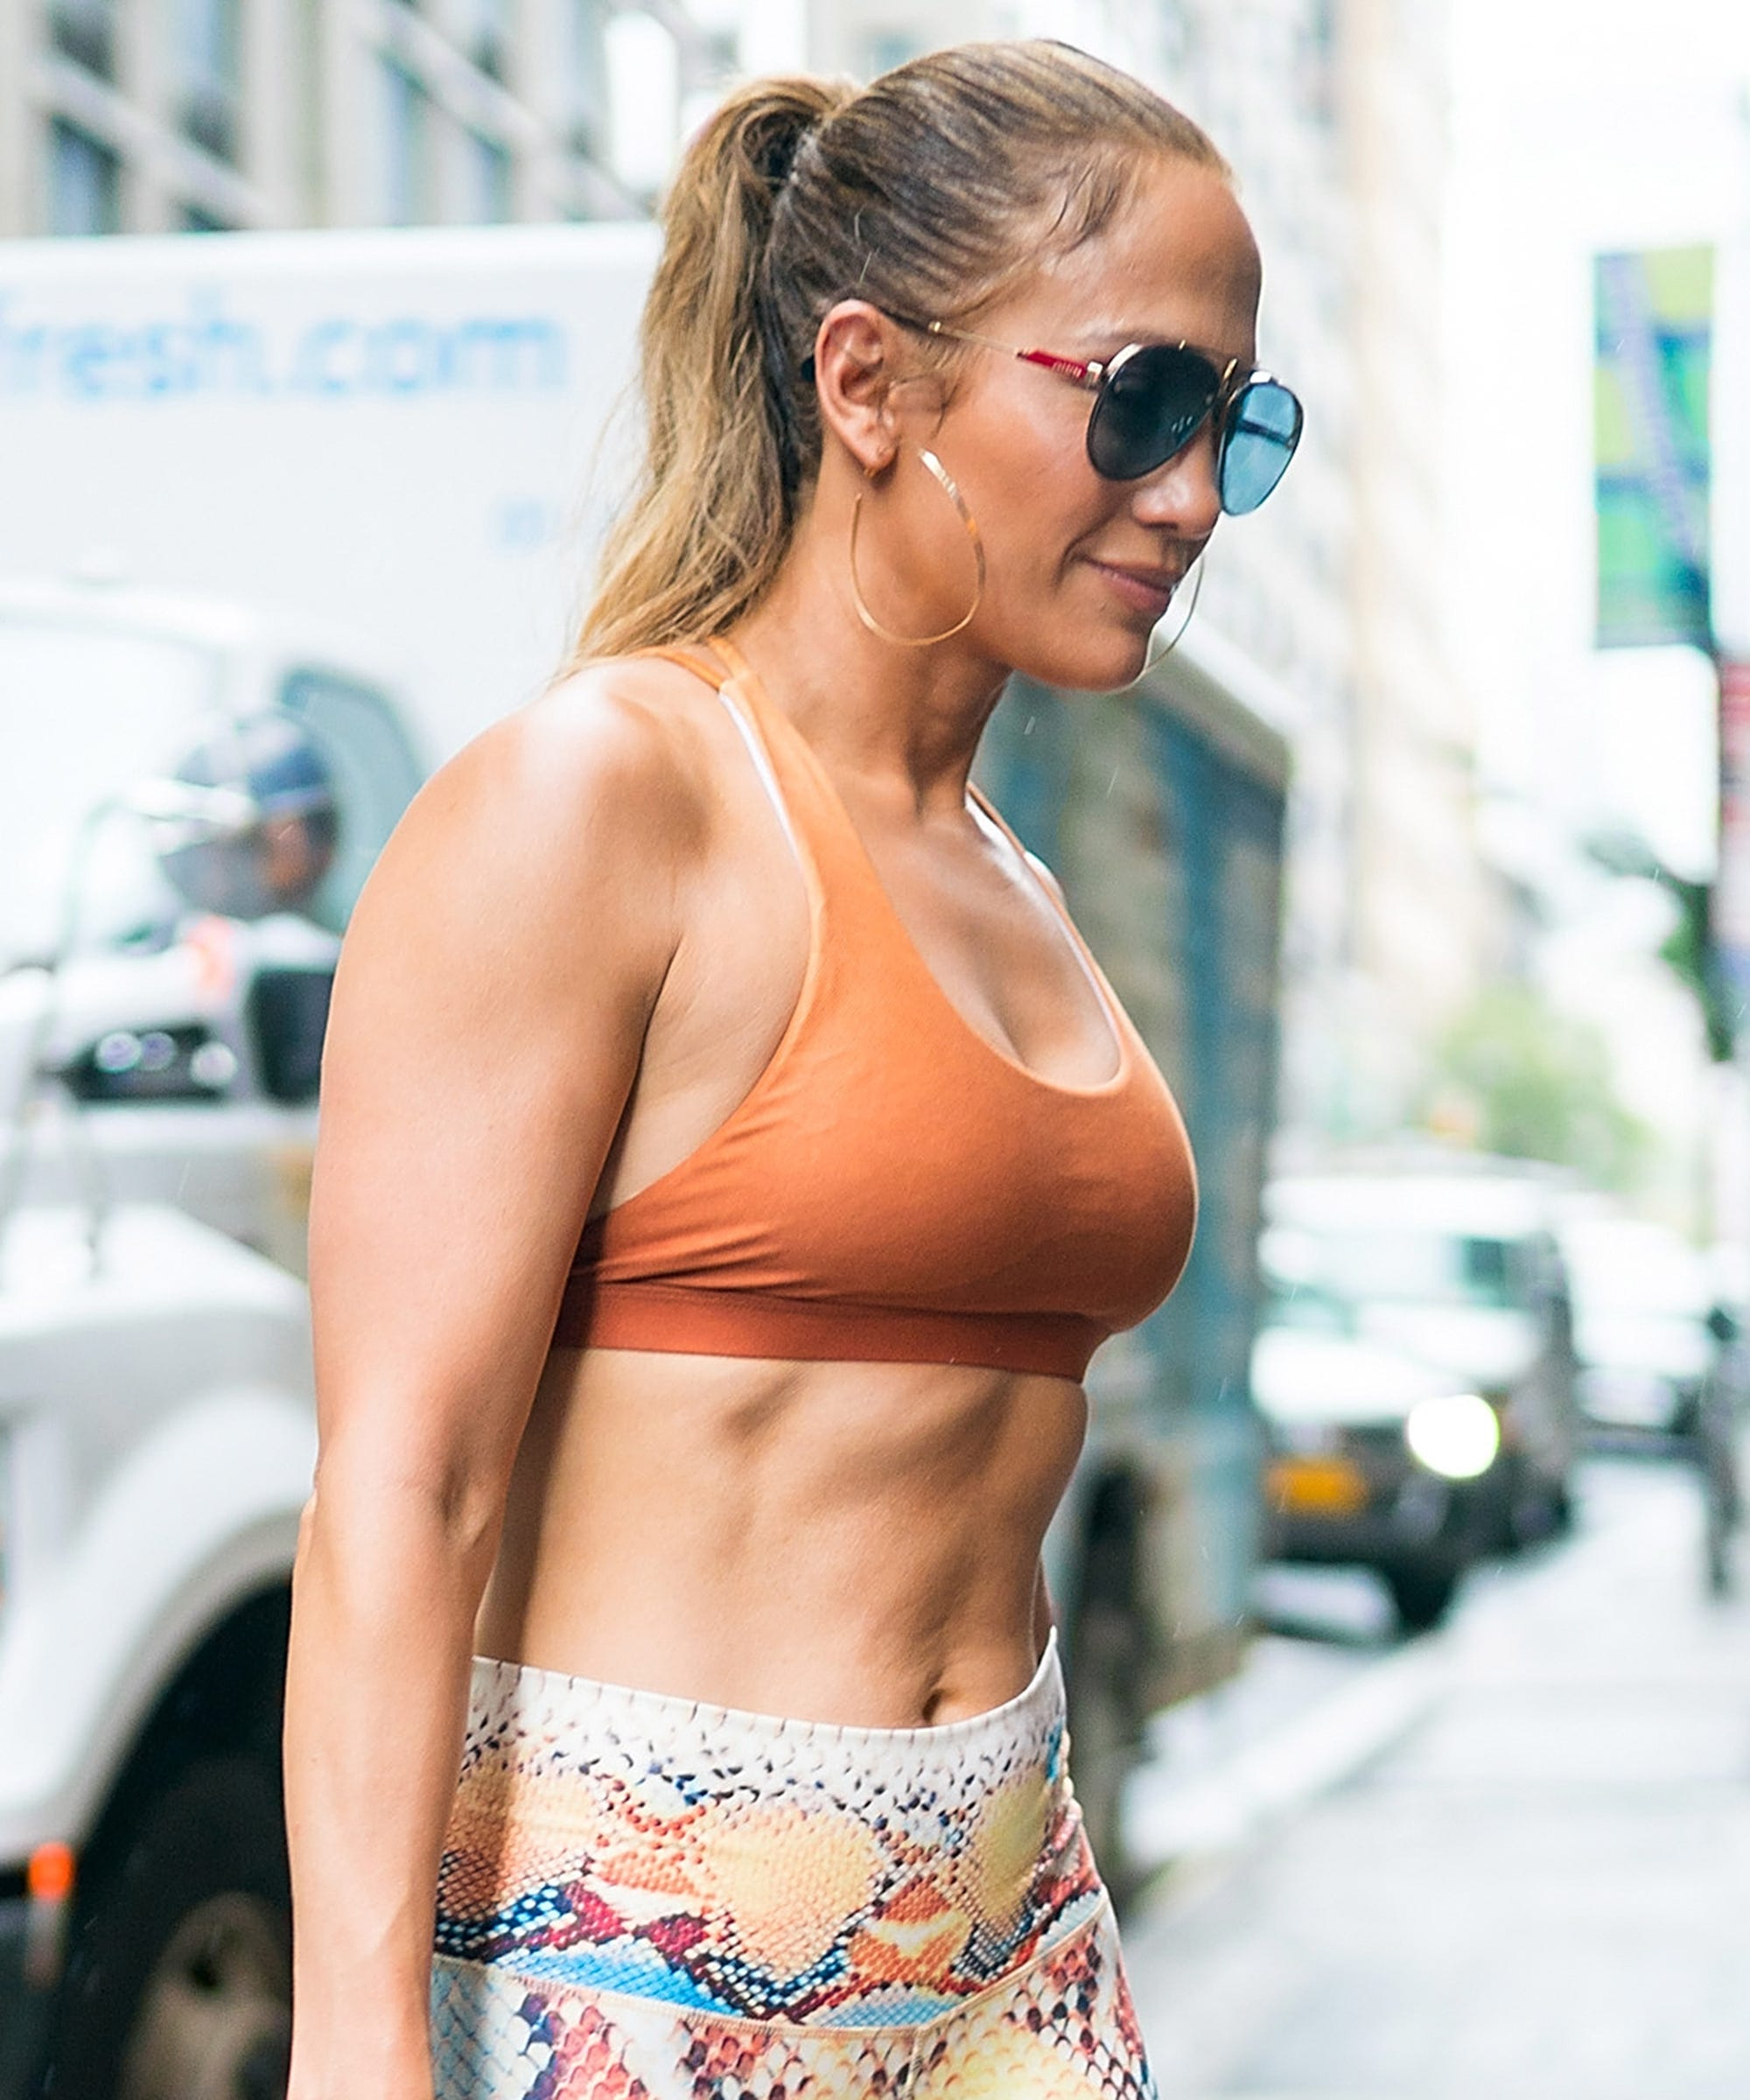 The Varied Fitness Routine That Keeps J. Lo Looking So Damn Good